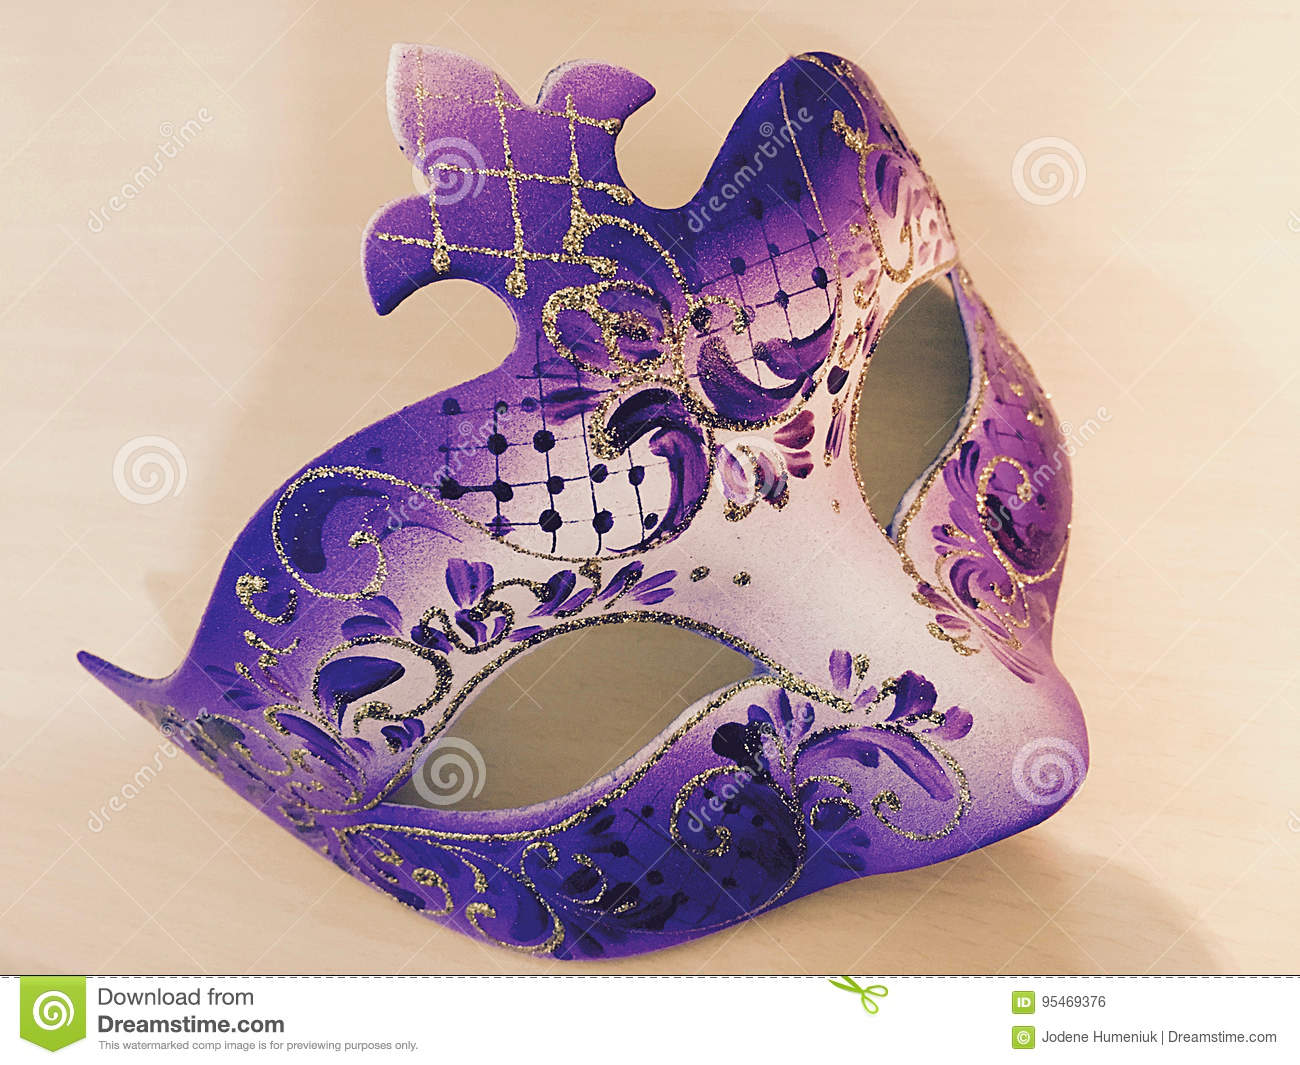 f51112fa54b3 Purple Masquerade Mask from Venice, Italy. Photo Taken On: February 08th,  2017. More similar stock images